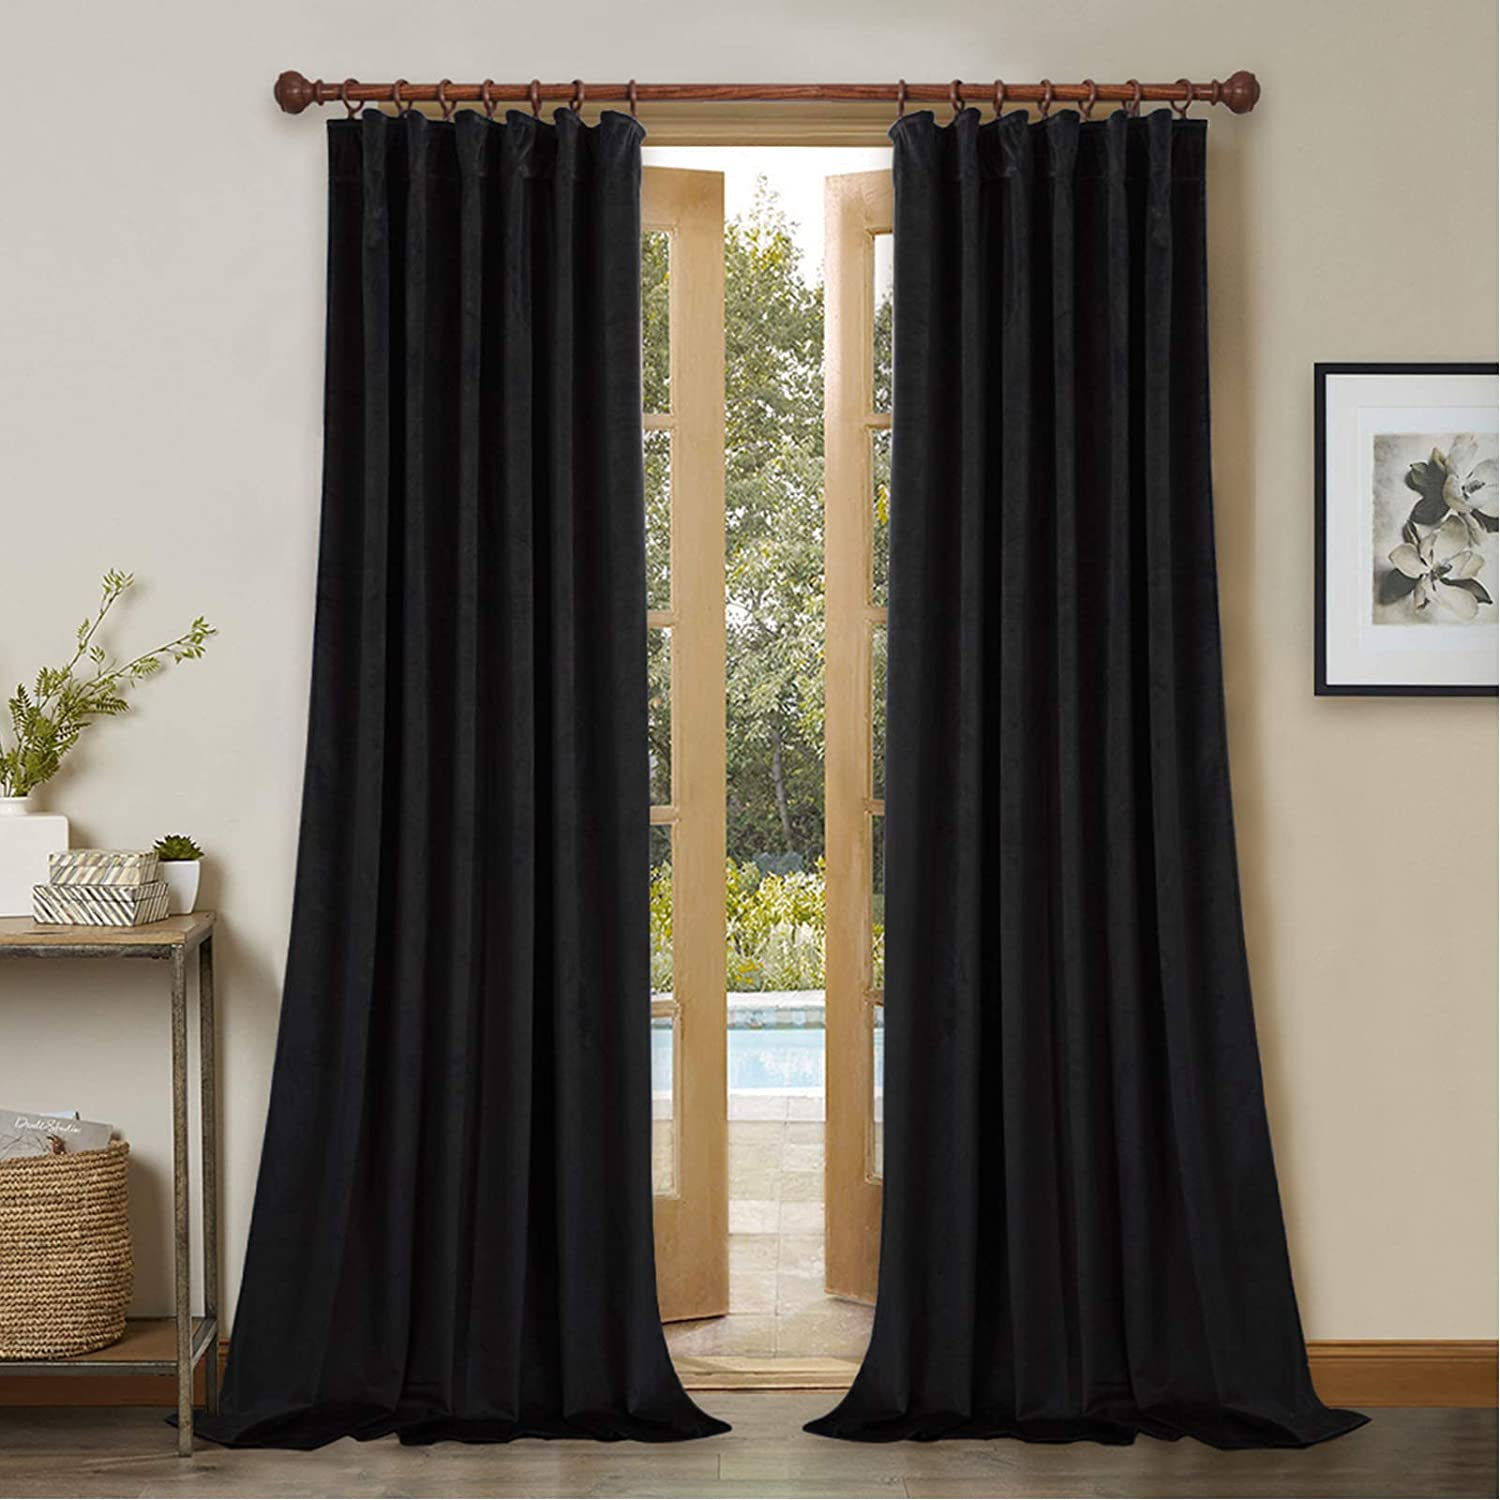 Amazon Com Stangh Blackout Velvet Curtains For Window Back Tab Design Thermal Insulated Curtain Panels 108 Inches Long Backdrop Curtains For Studio Theater Patio Door Black 52 X 108 2 Panels Kitchen Dining